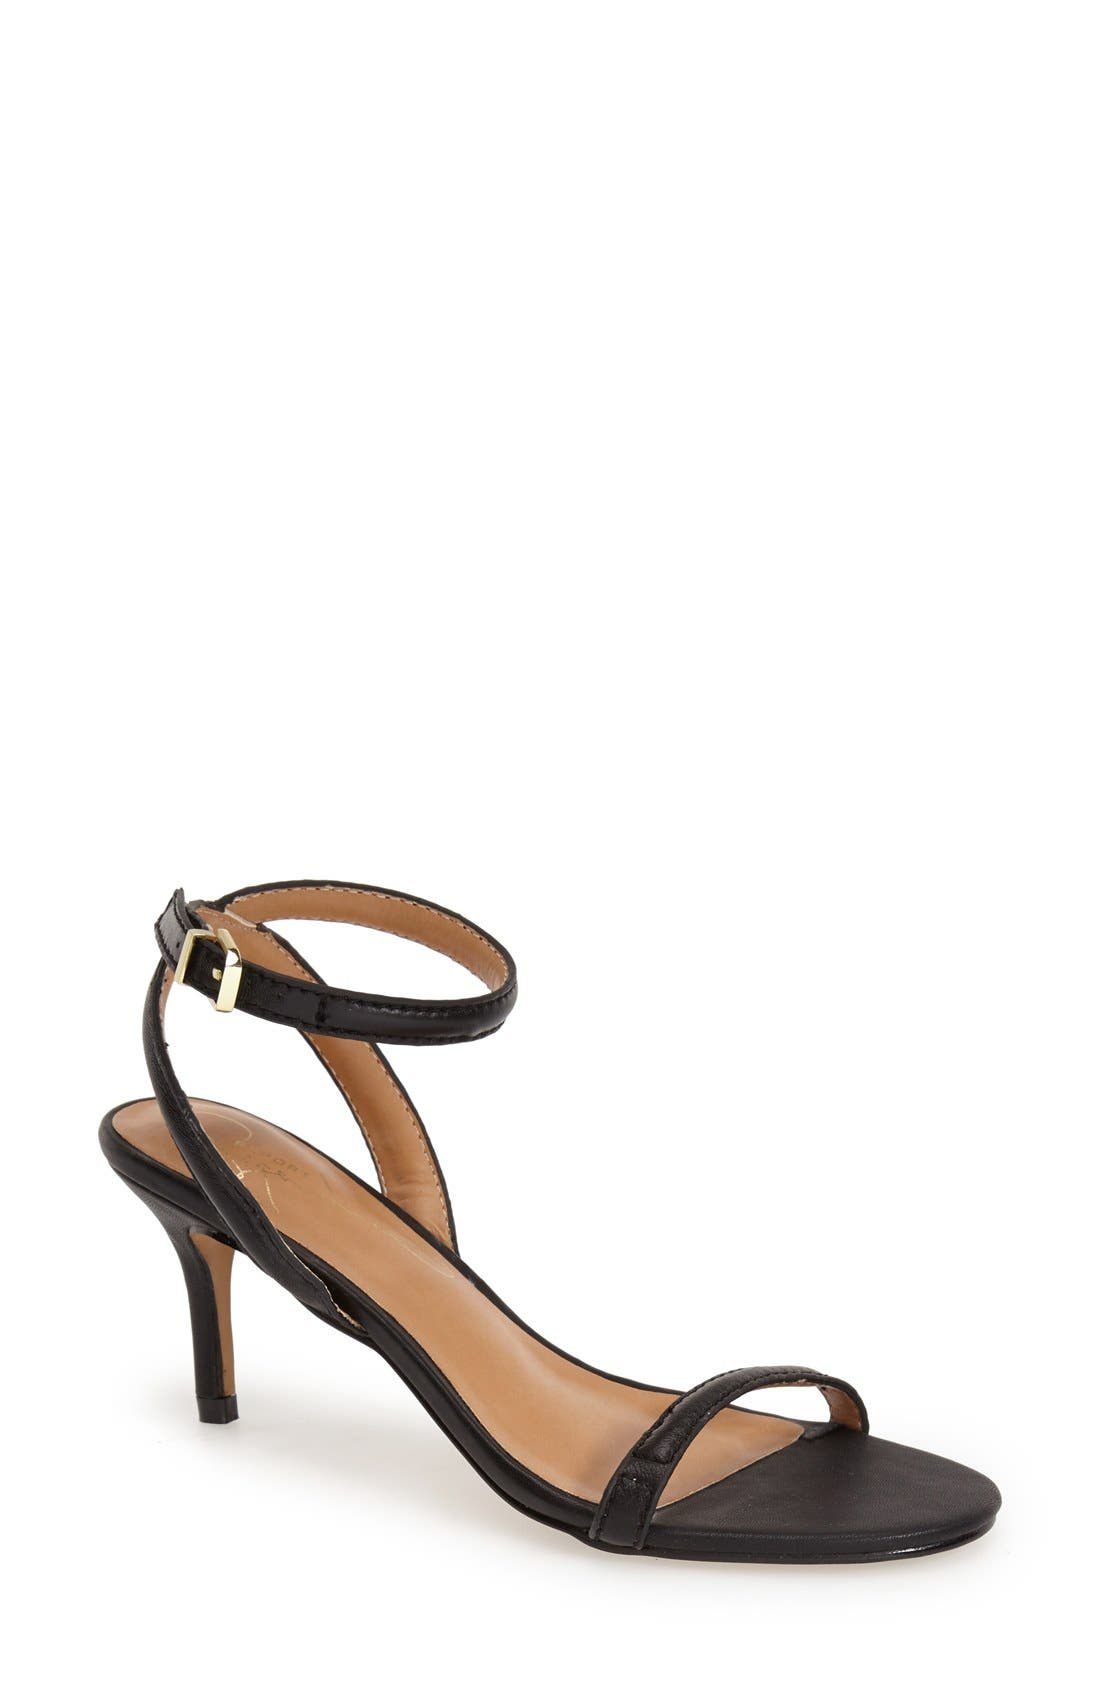 REPORT 'Signature Neely' Ankle Strap Sandal,                         Main,                         color, 001